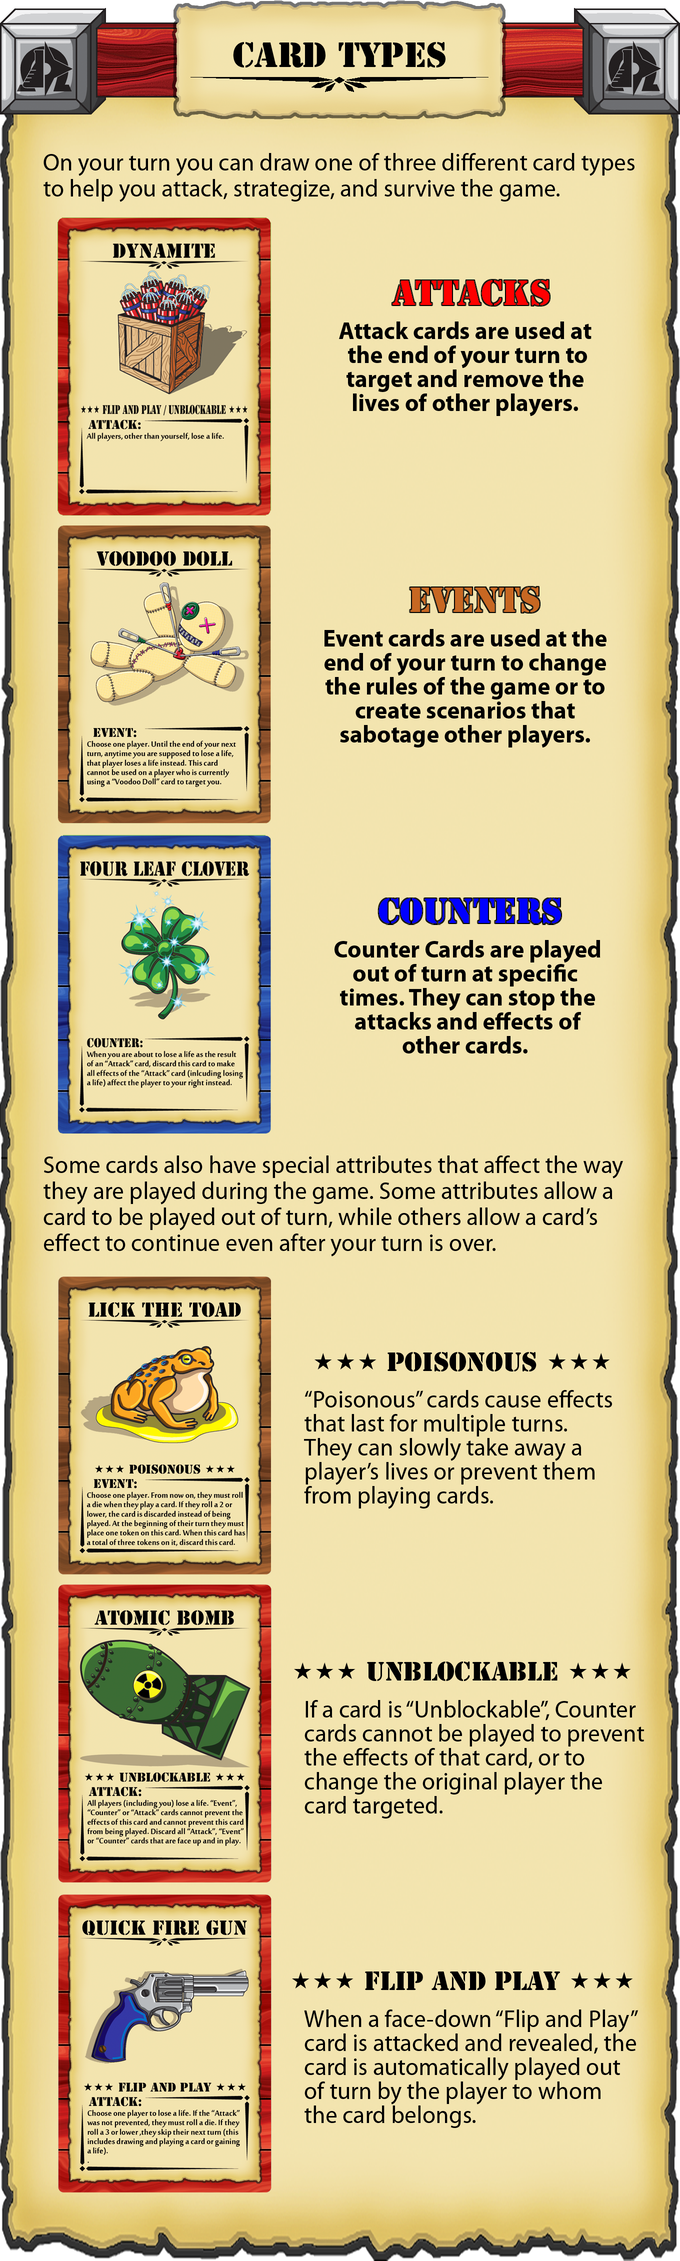 The card types in Science Ninja Cowboy